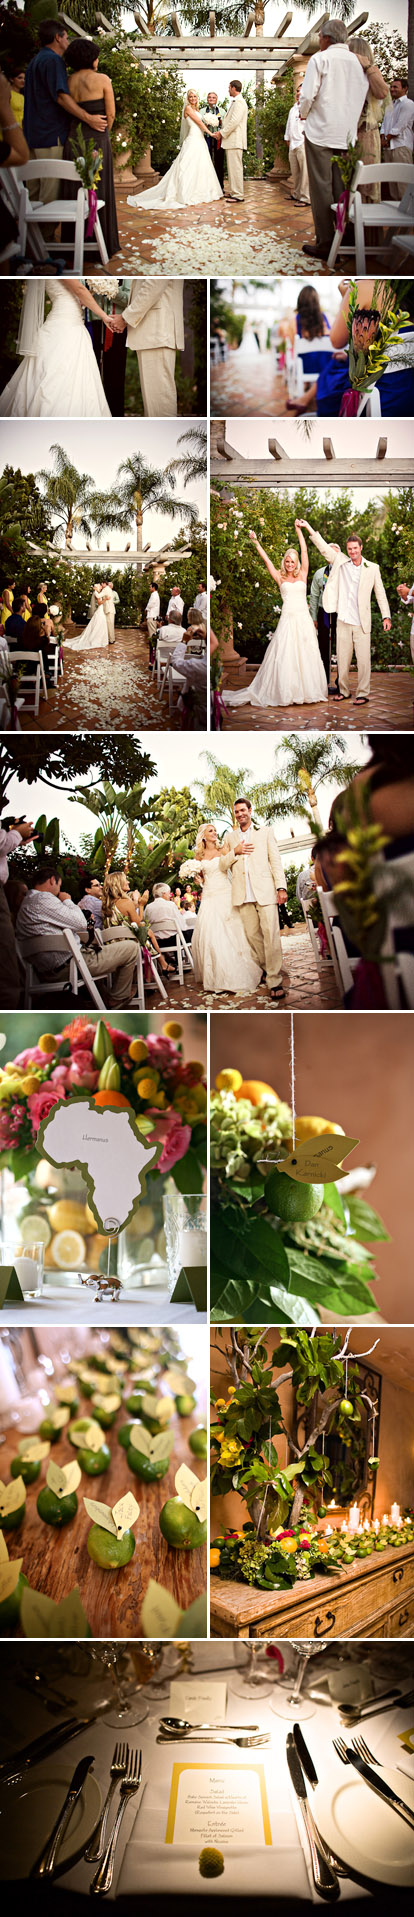 San Diego wedding at Rancho Valencia Resort, outdoor wedding ceremony, lime green, lemon yellow, orange and pink wedding flowers and decor, images by Natalie Moser Photography